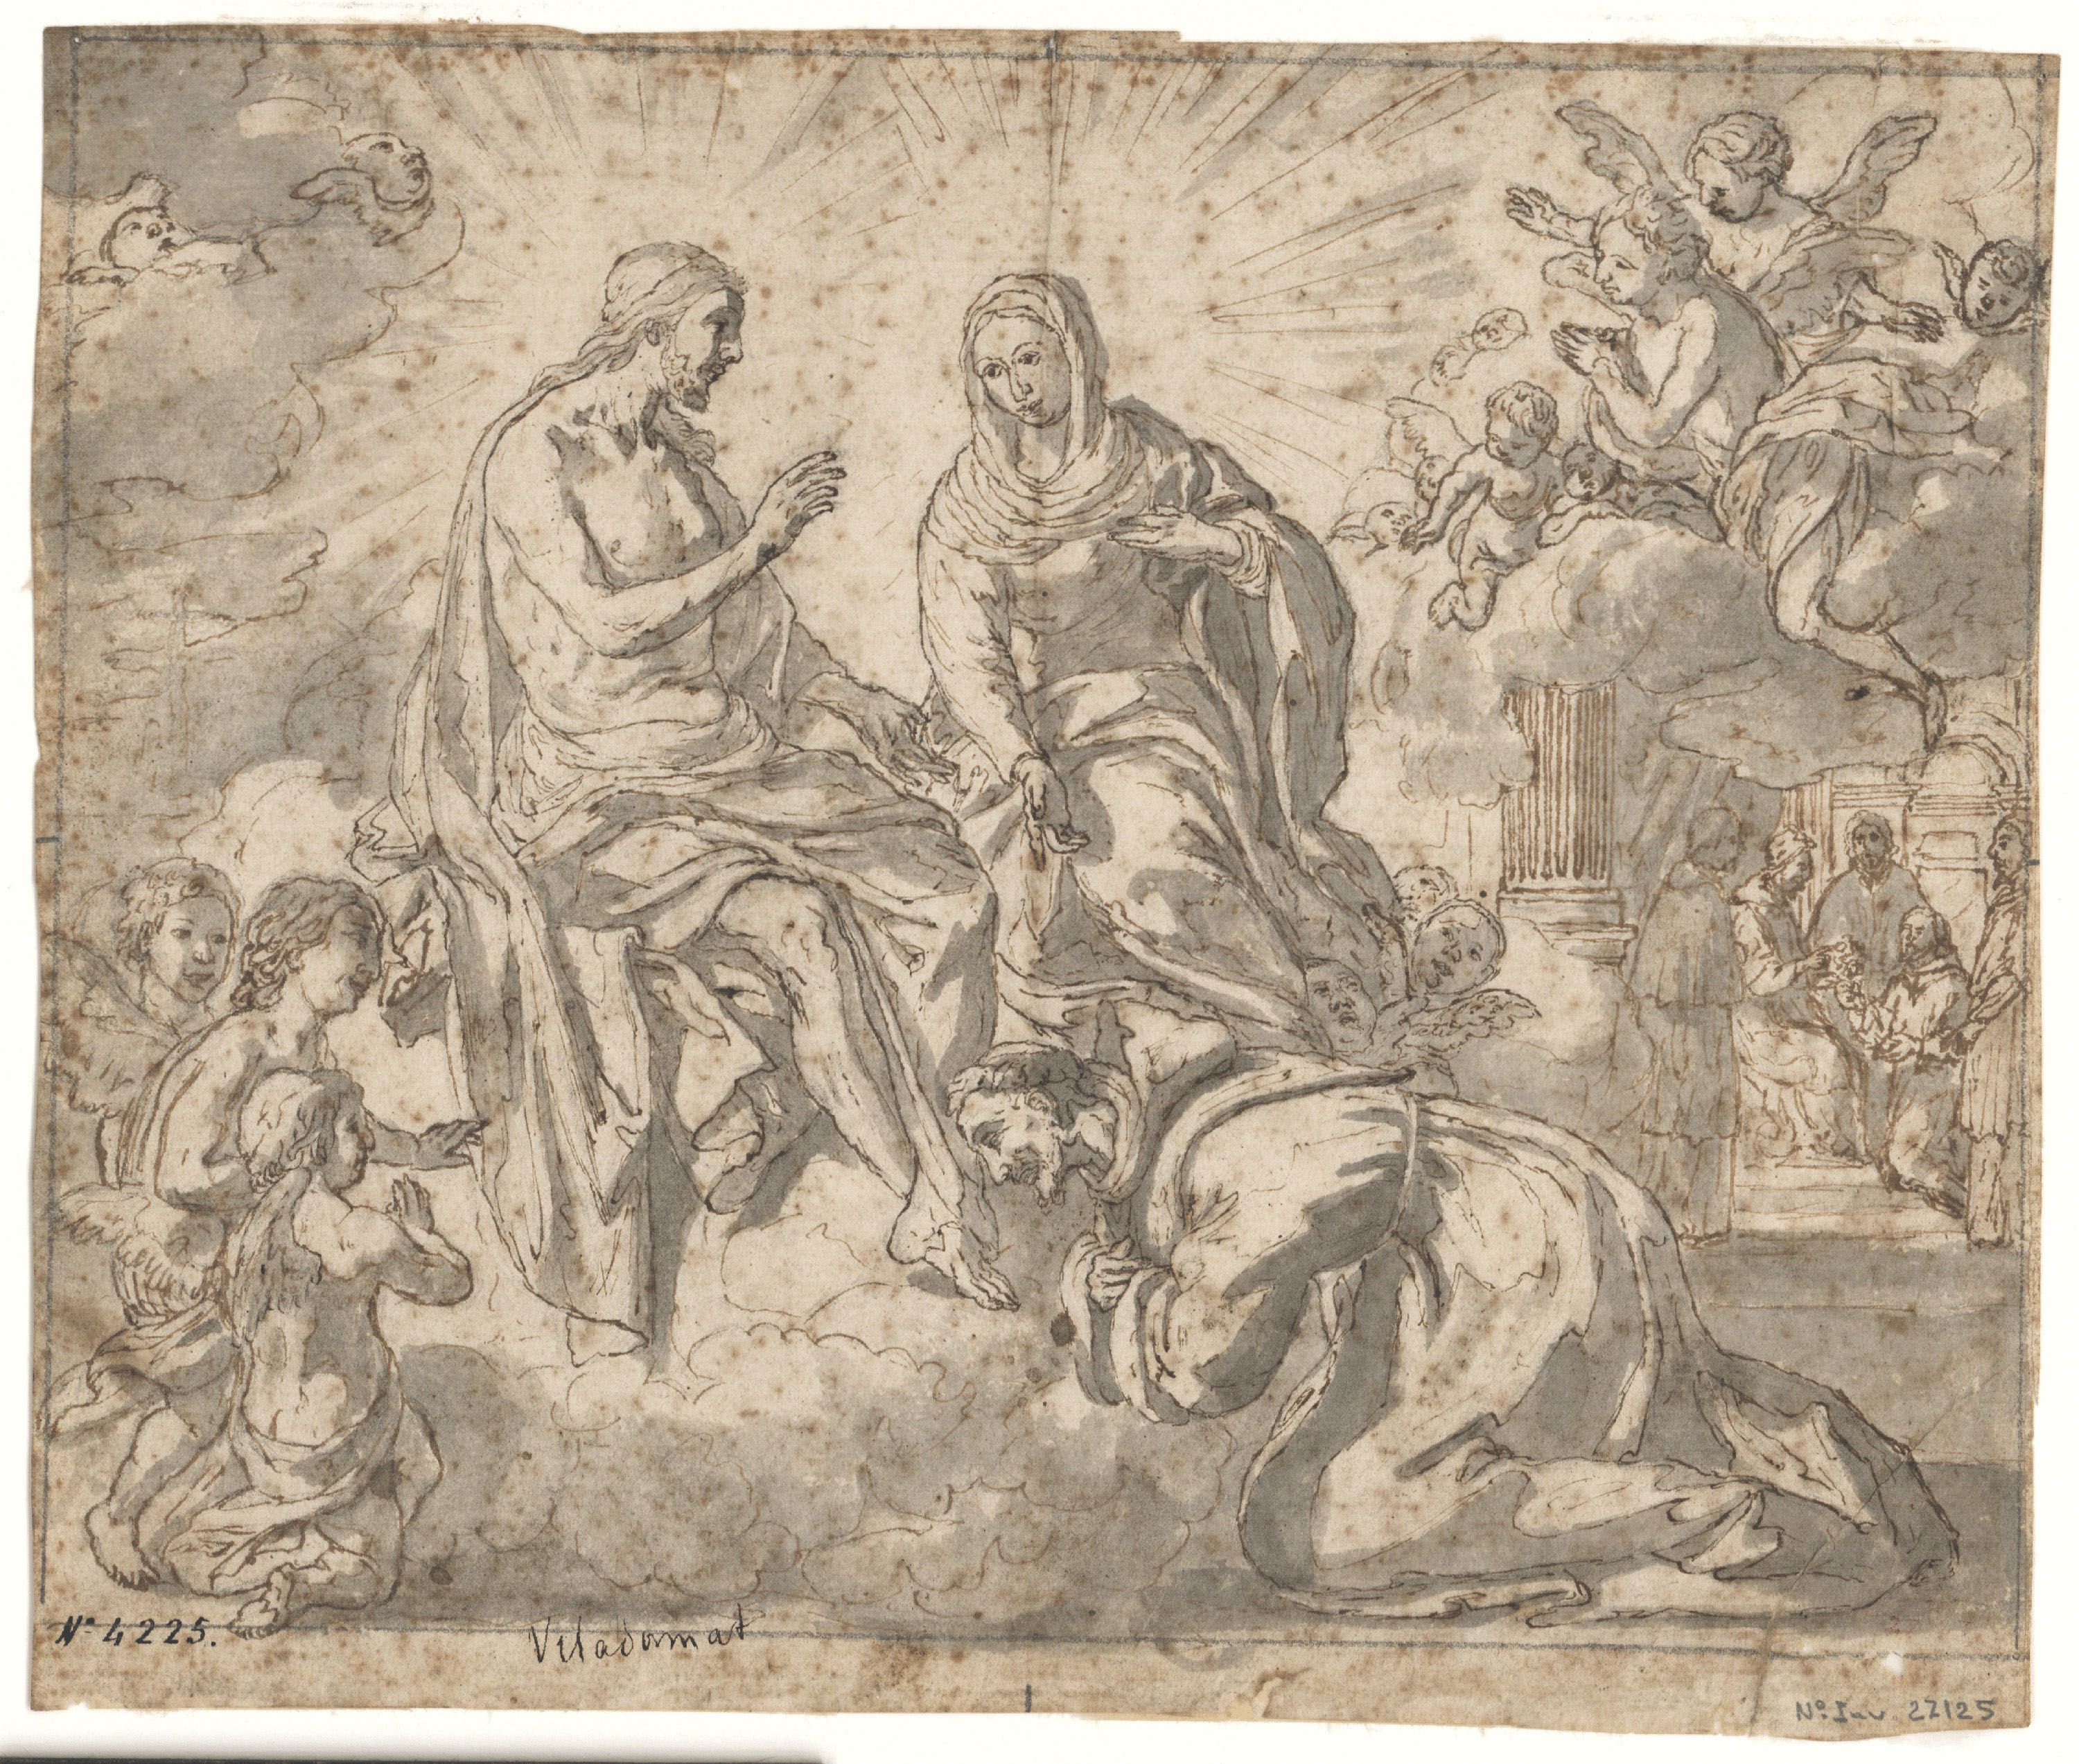 Antoni Viladomat - Study for the picture 'Jesus Gives the Indulgence of the Porziuncola to Saint Francis' - Circa 1729-1733